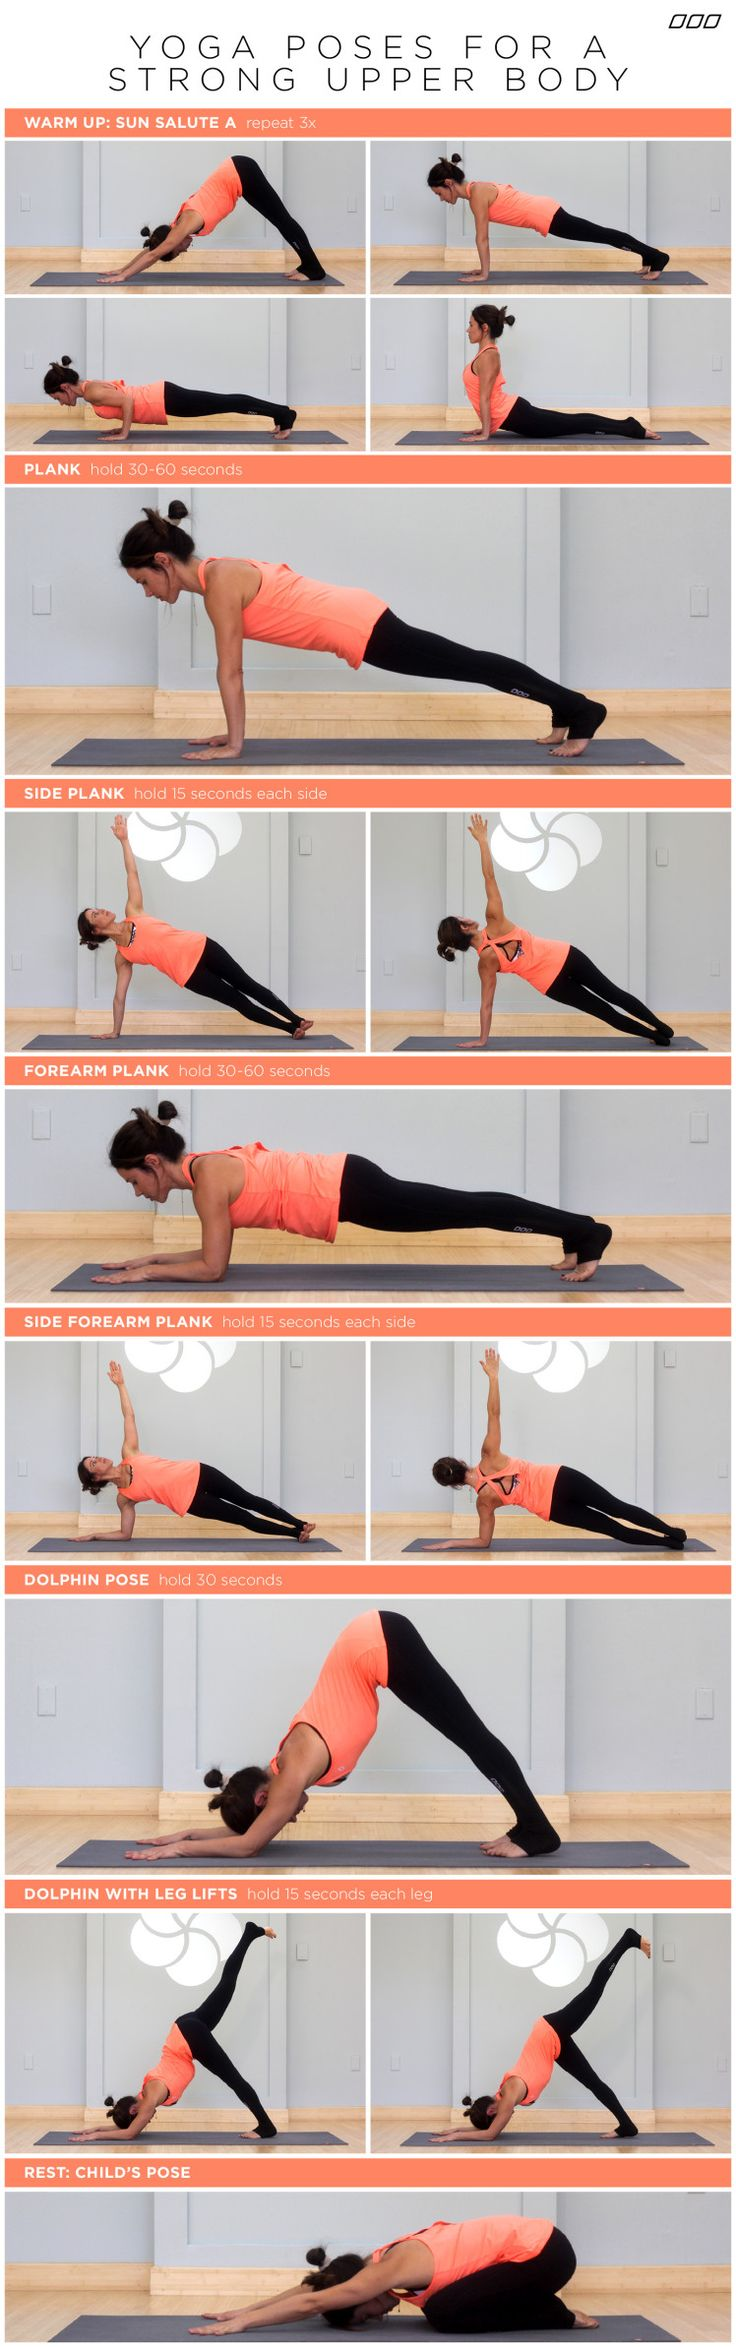 Yoga Poses For A Strong Upper Body .......... Looking to strengthen and tone your shoulders, upper back and arms but don't have time to head to the gym? ..... Grab your mat and let's go!